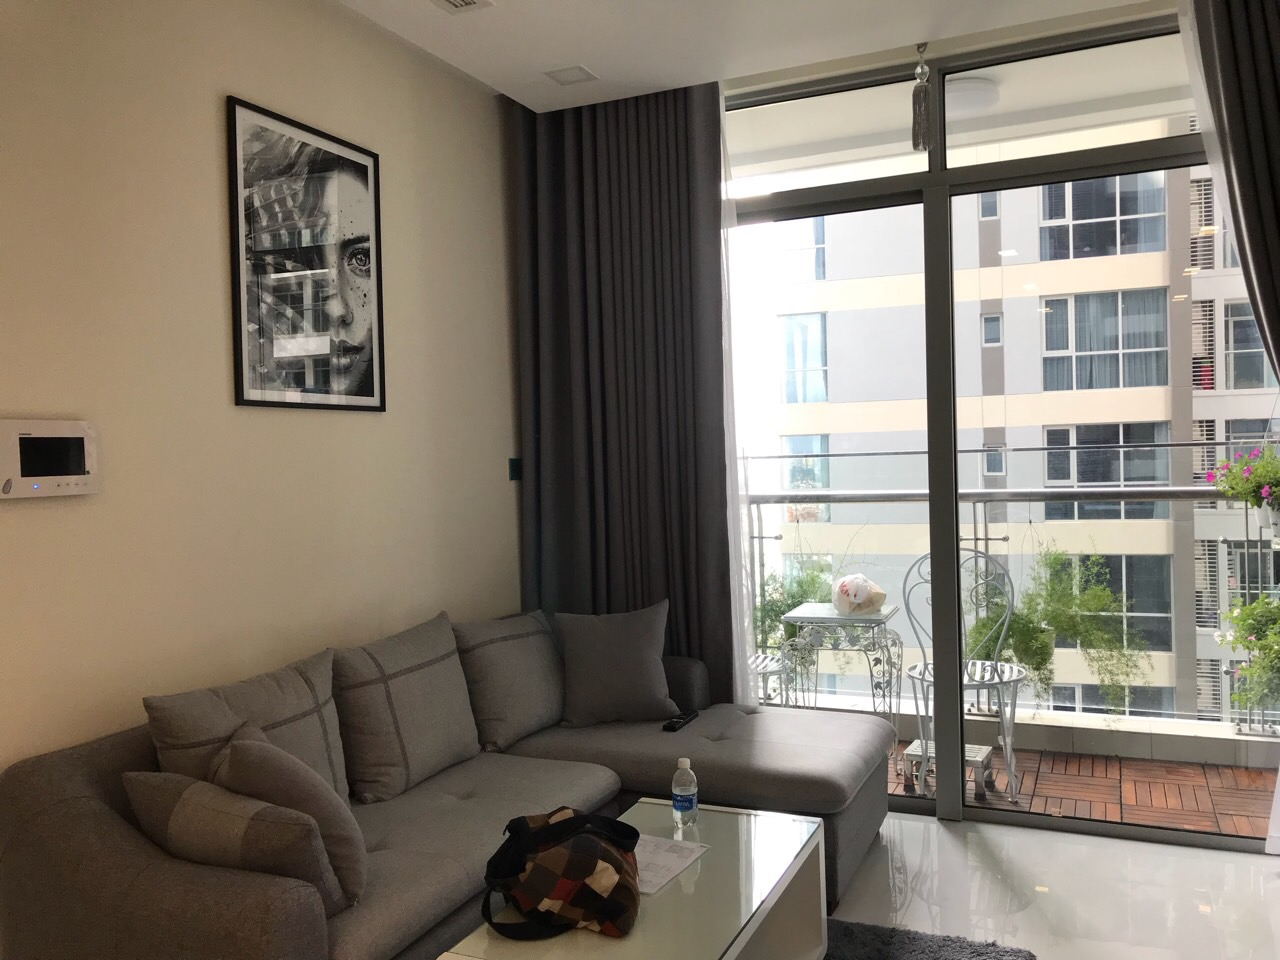 vinhomes central park apartment for rent in binh thanh district hcmc BT105L399 (1)